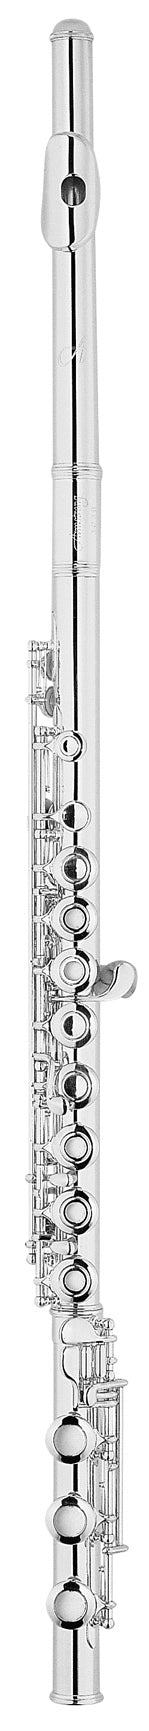 Armstrong 303B Intermediate Flute - Sterling Silver Headjoint